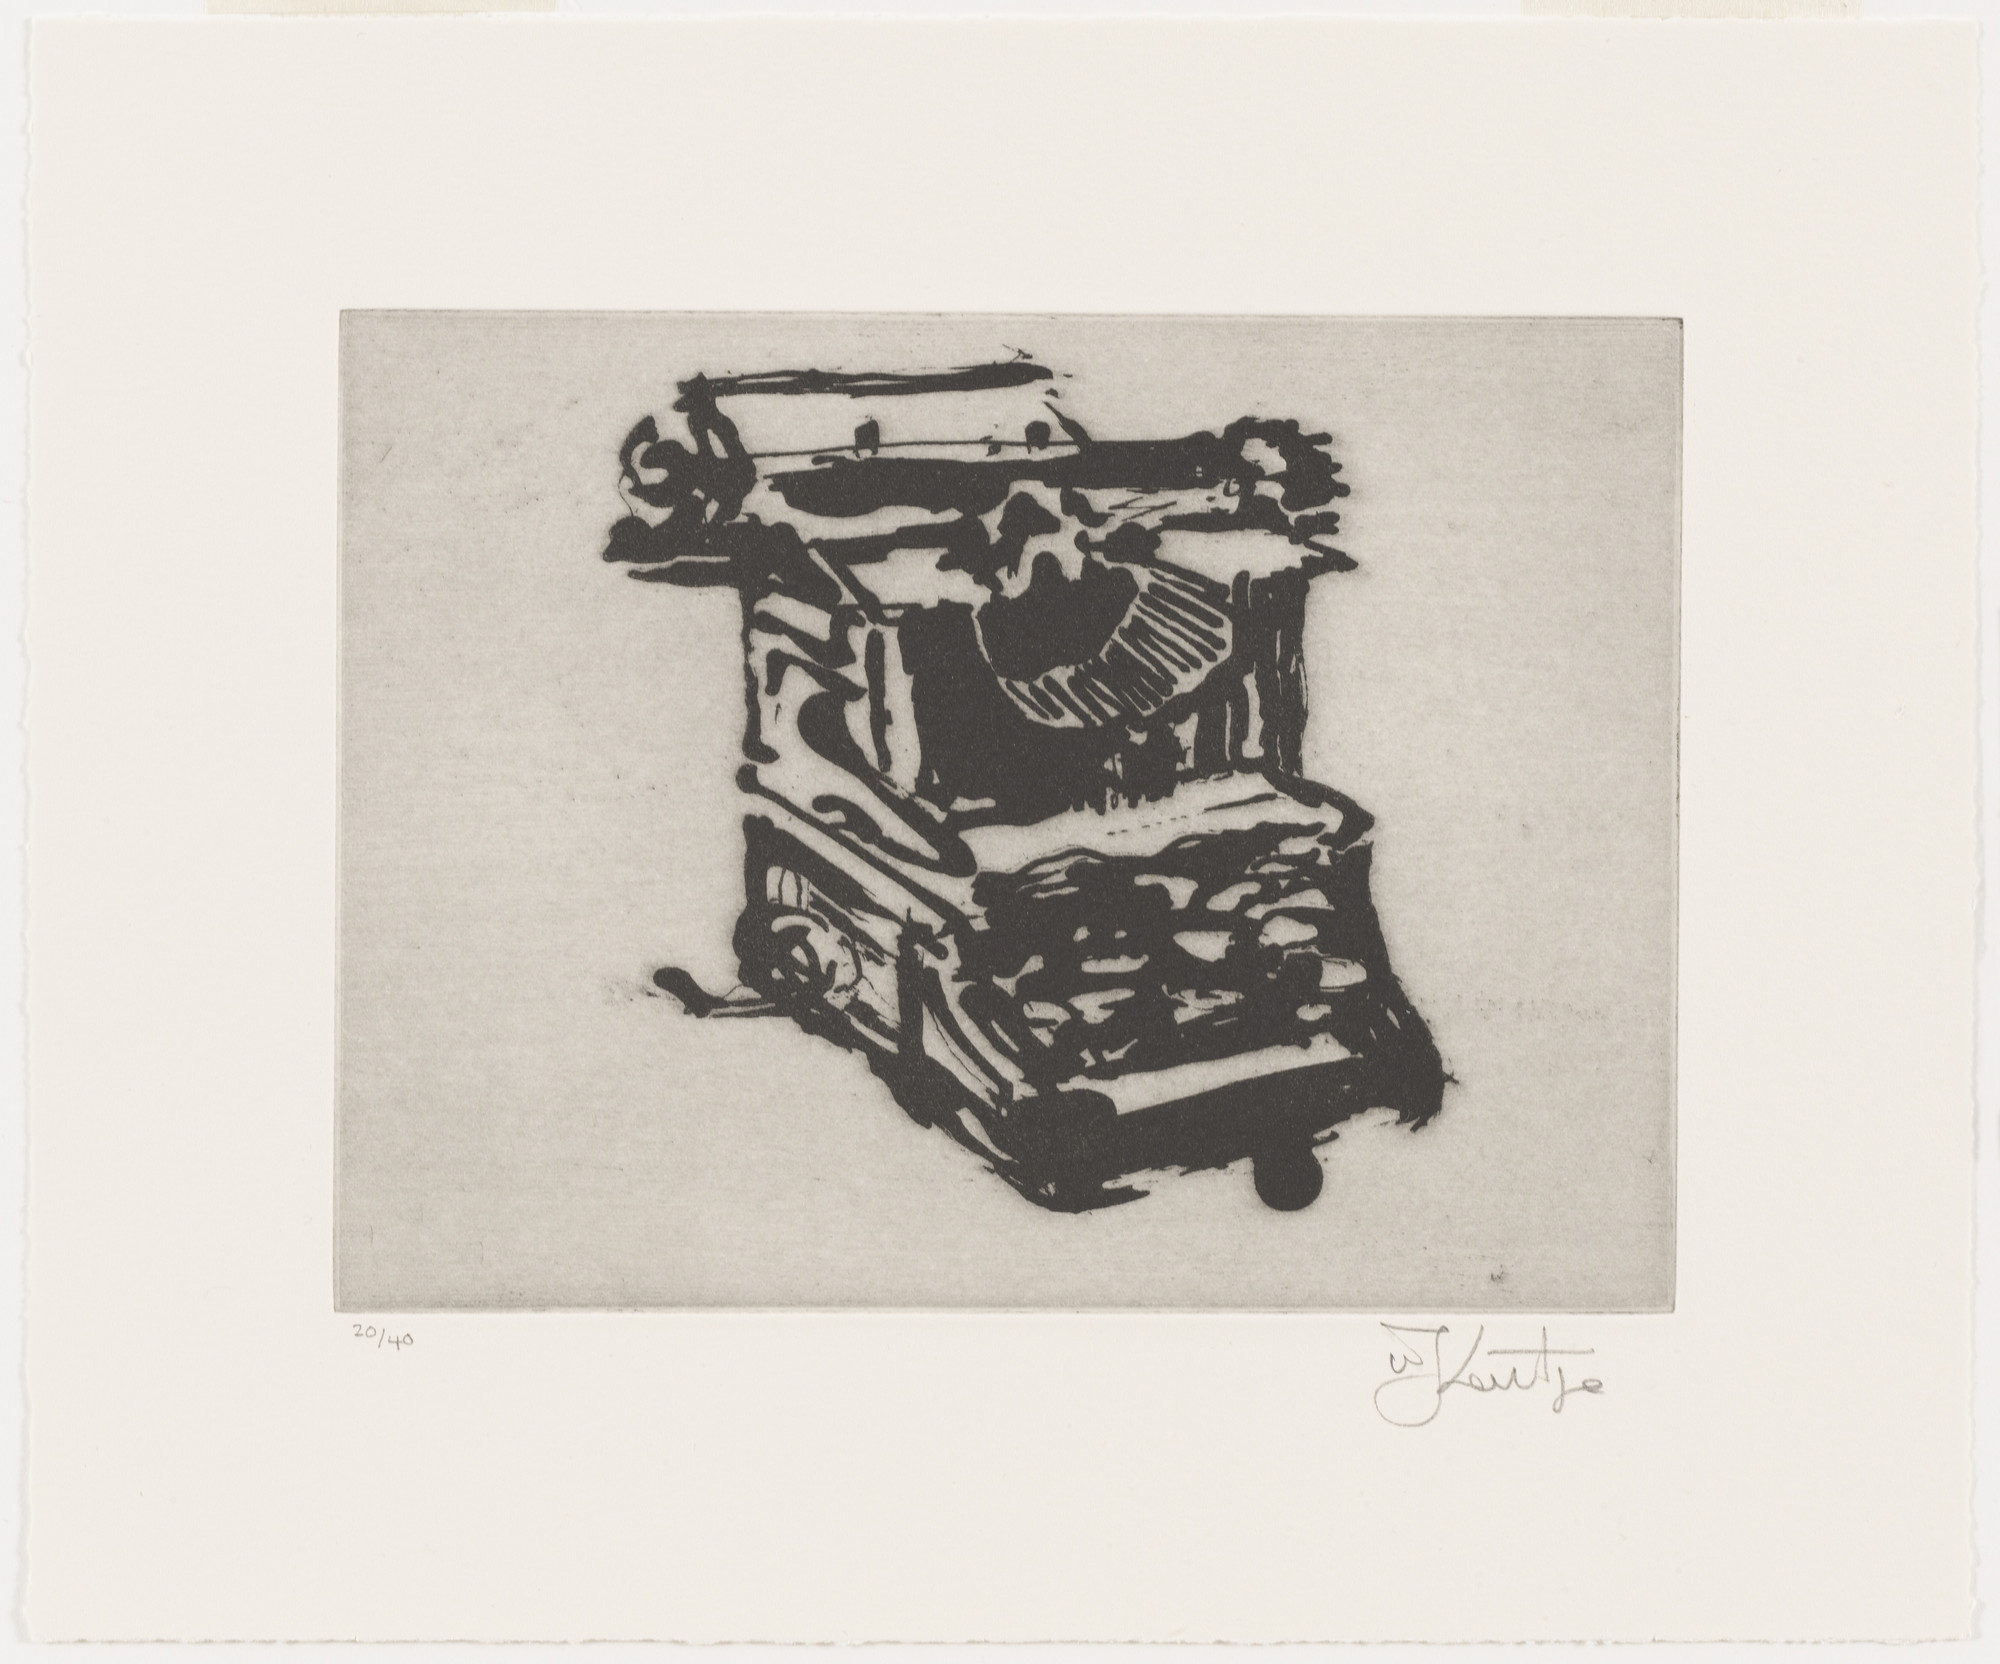 William Kentridge. Typewriter II from Typewriter. 2003